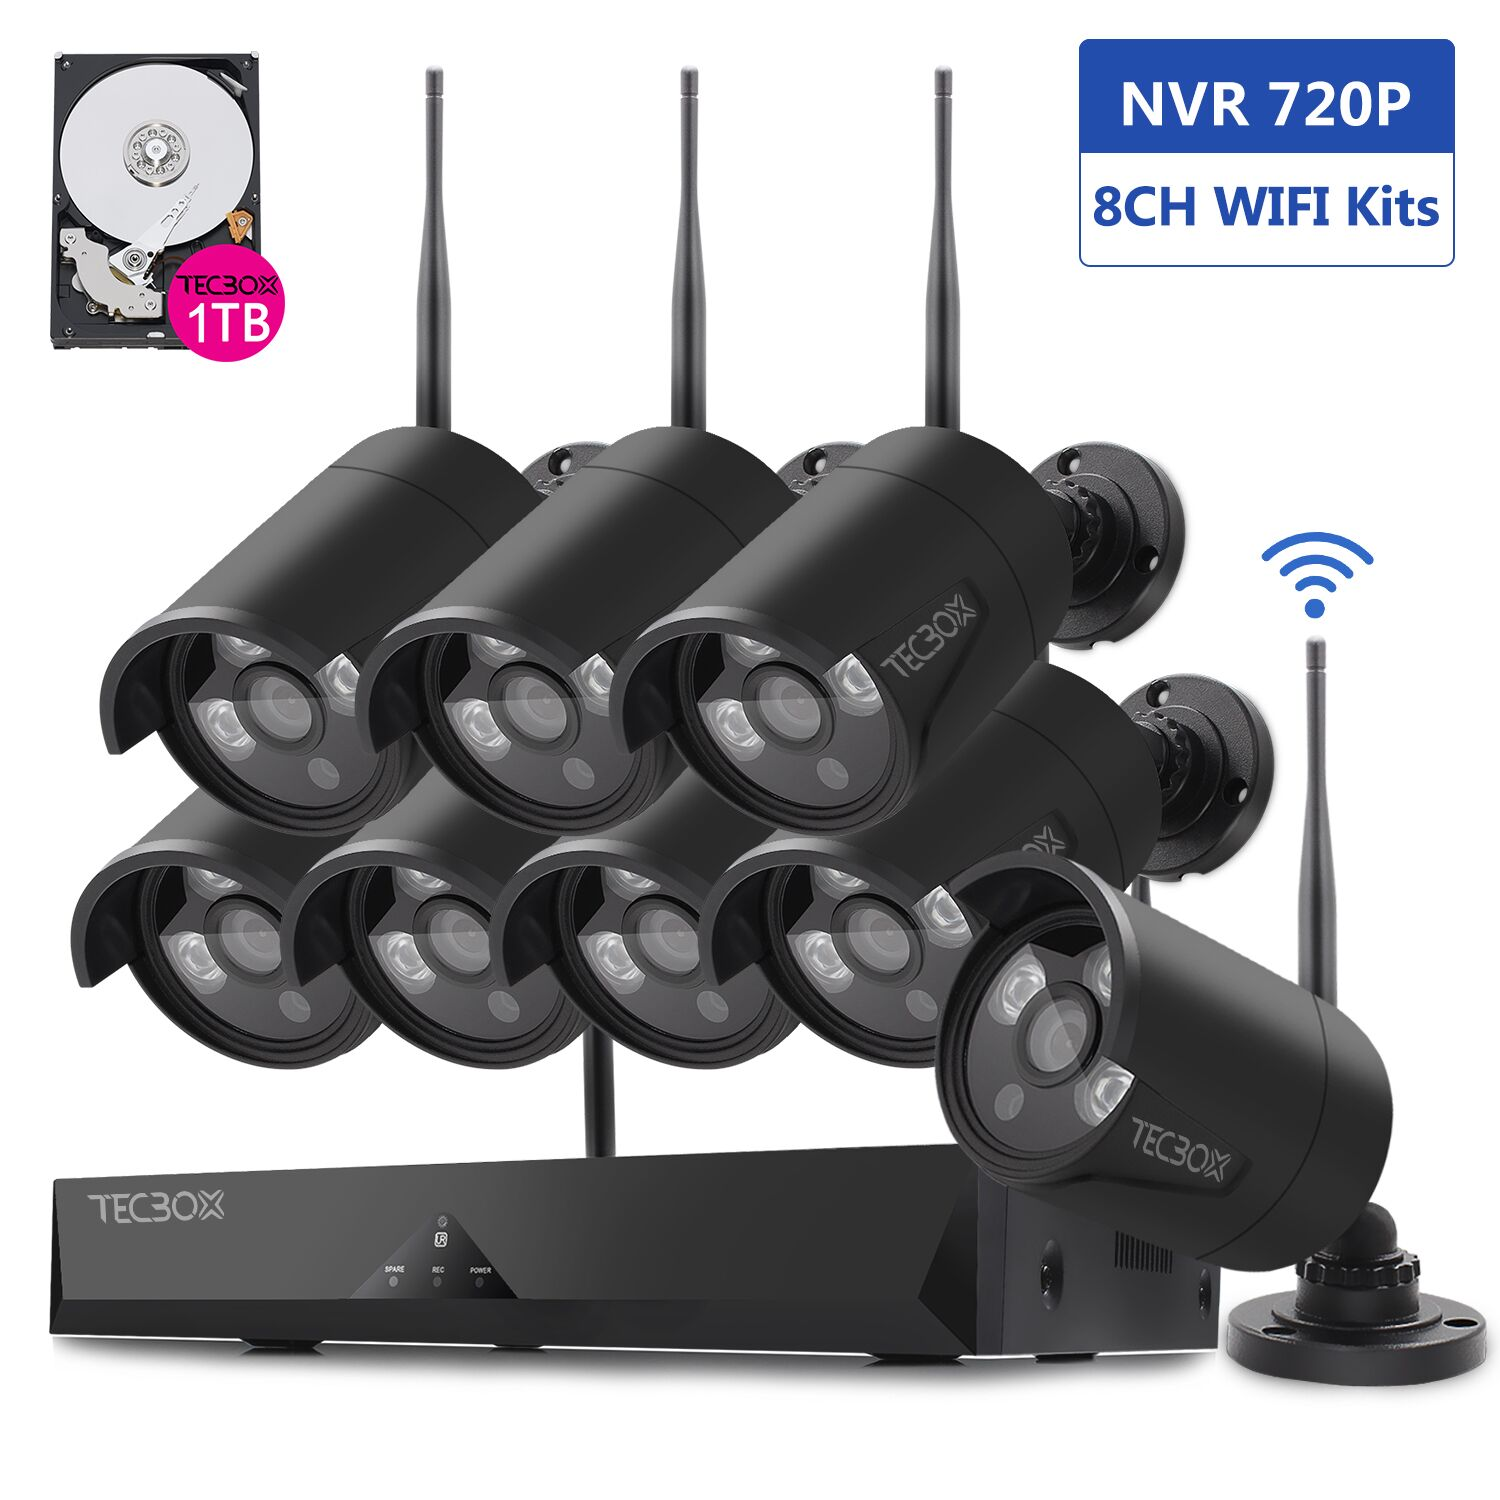 TECBOX Wireless HD 720p 8-Channel NVR 1TB Hard Drive Security System with 8 Bullet IP Network Security Cameras